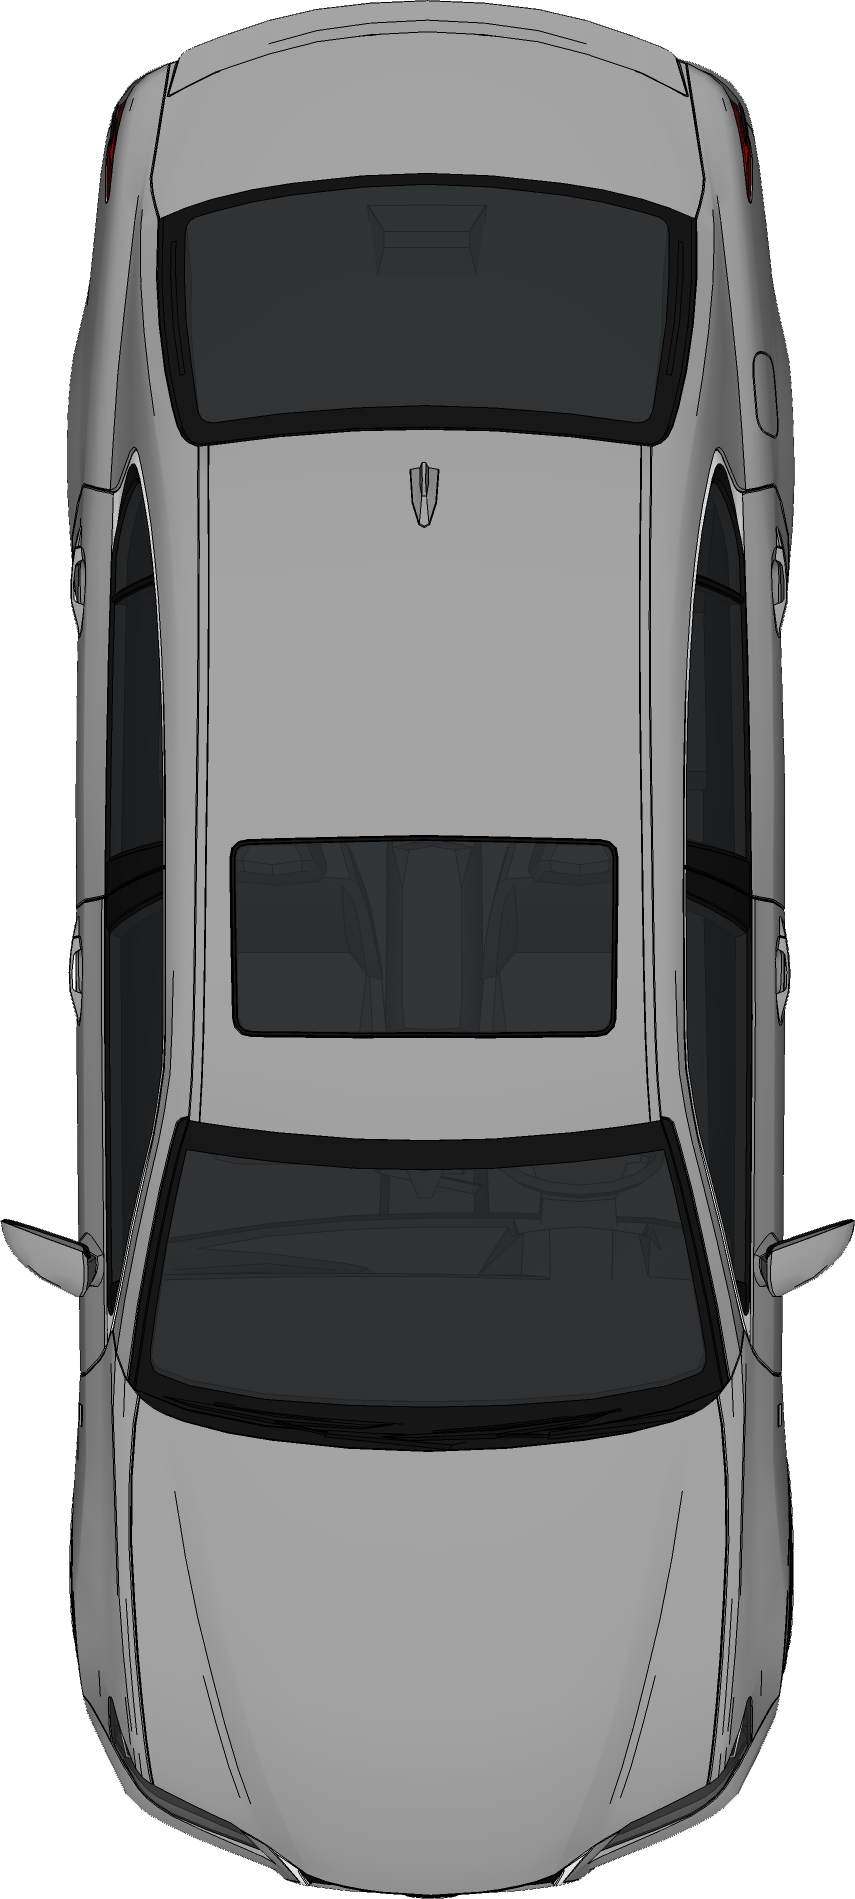 Car top view png. Clip art bed transprent